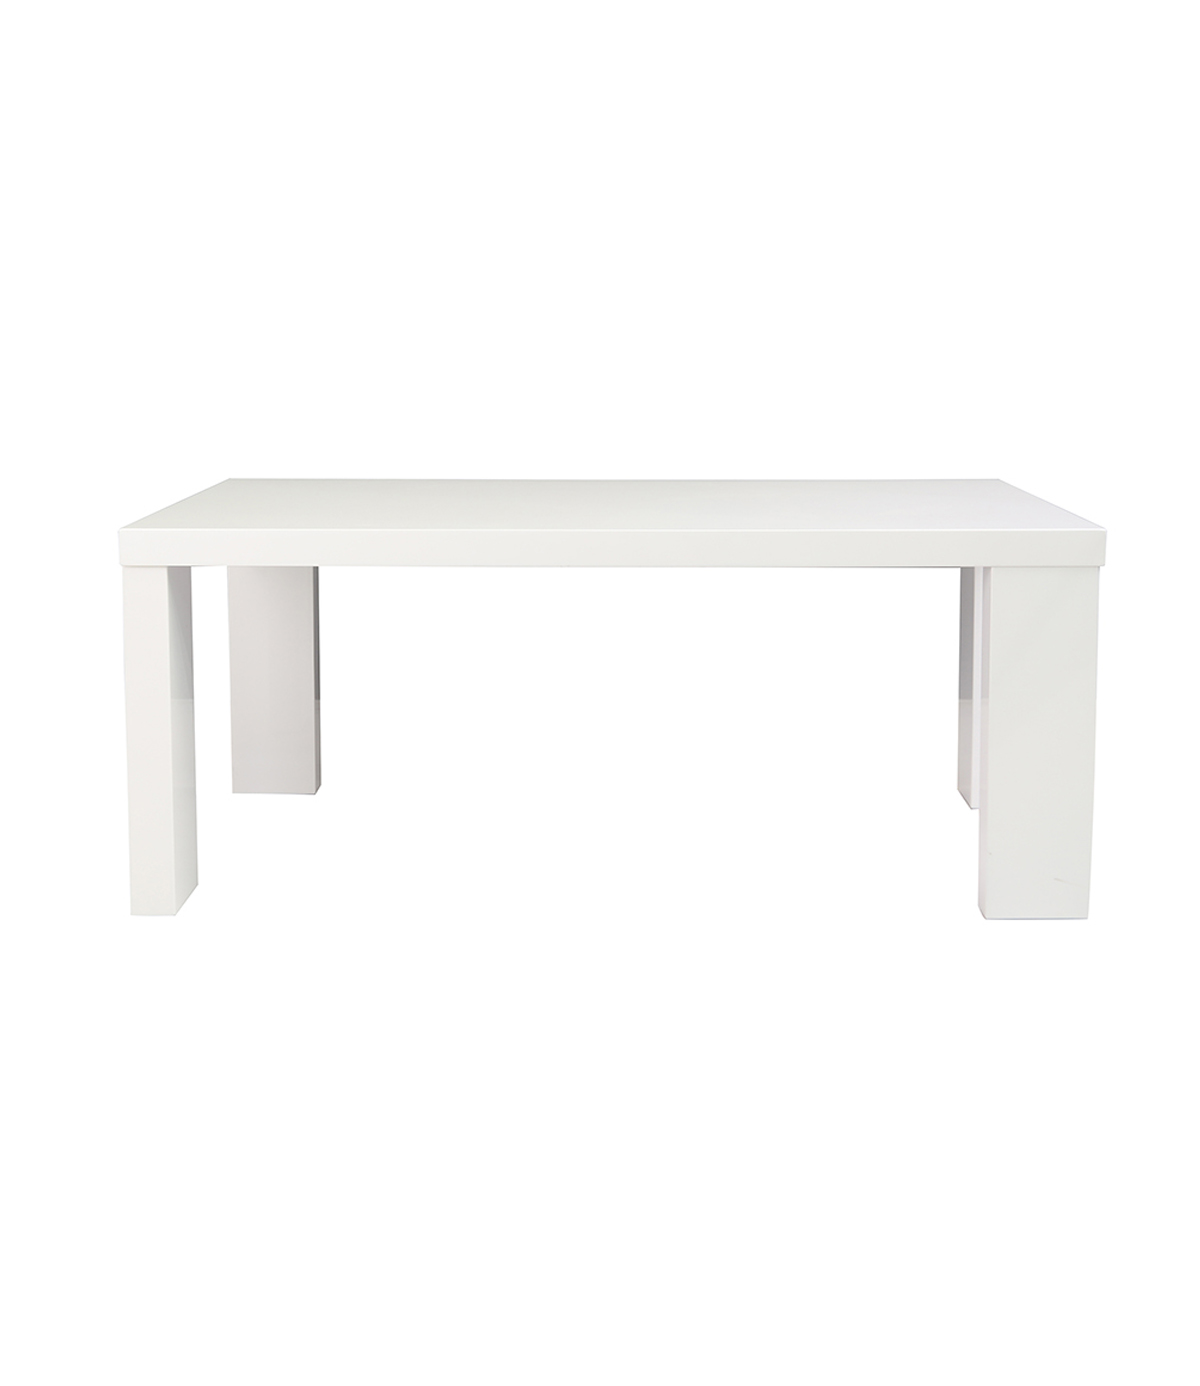 High Gloss 3 Side Nested Of Tables White Set Coffee Table: Wholesale Furniture Supplier UK